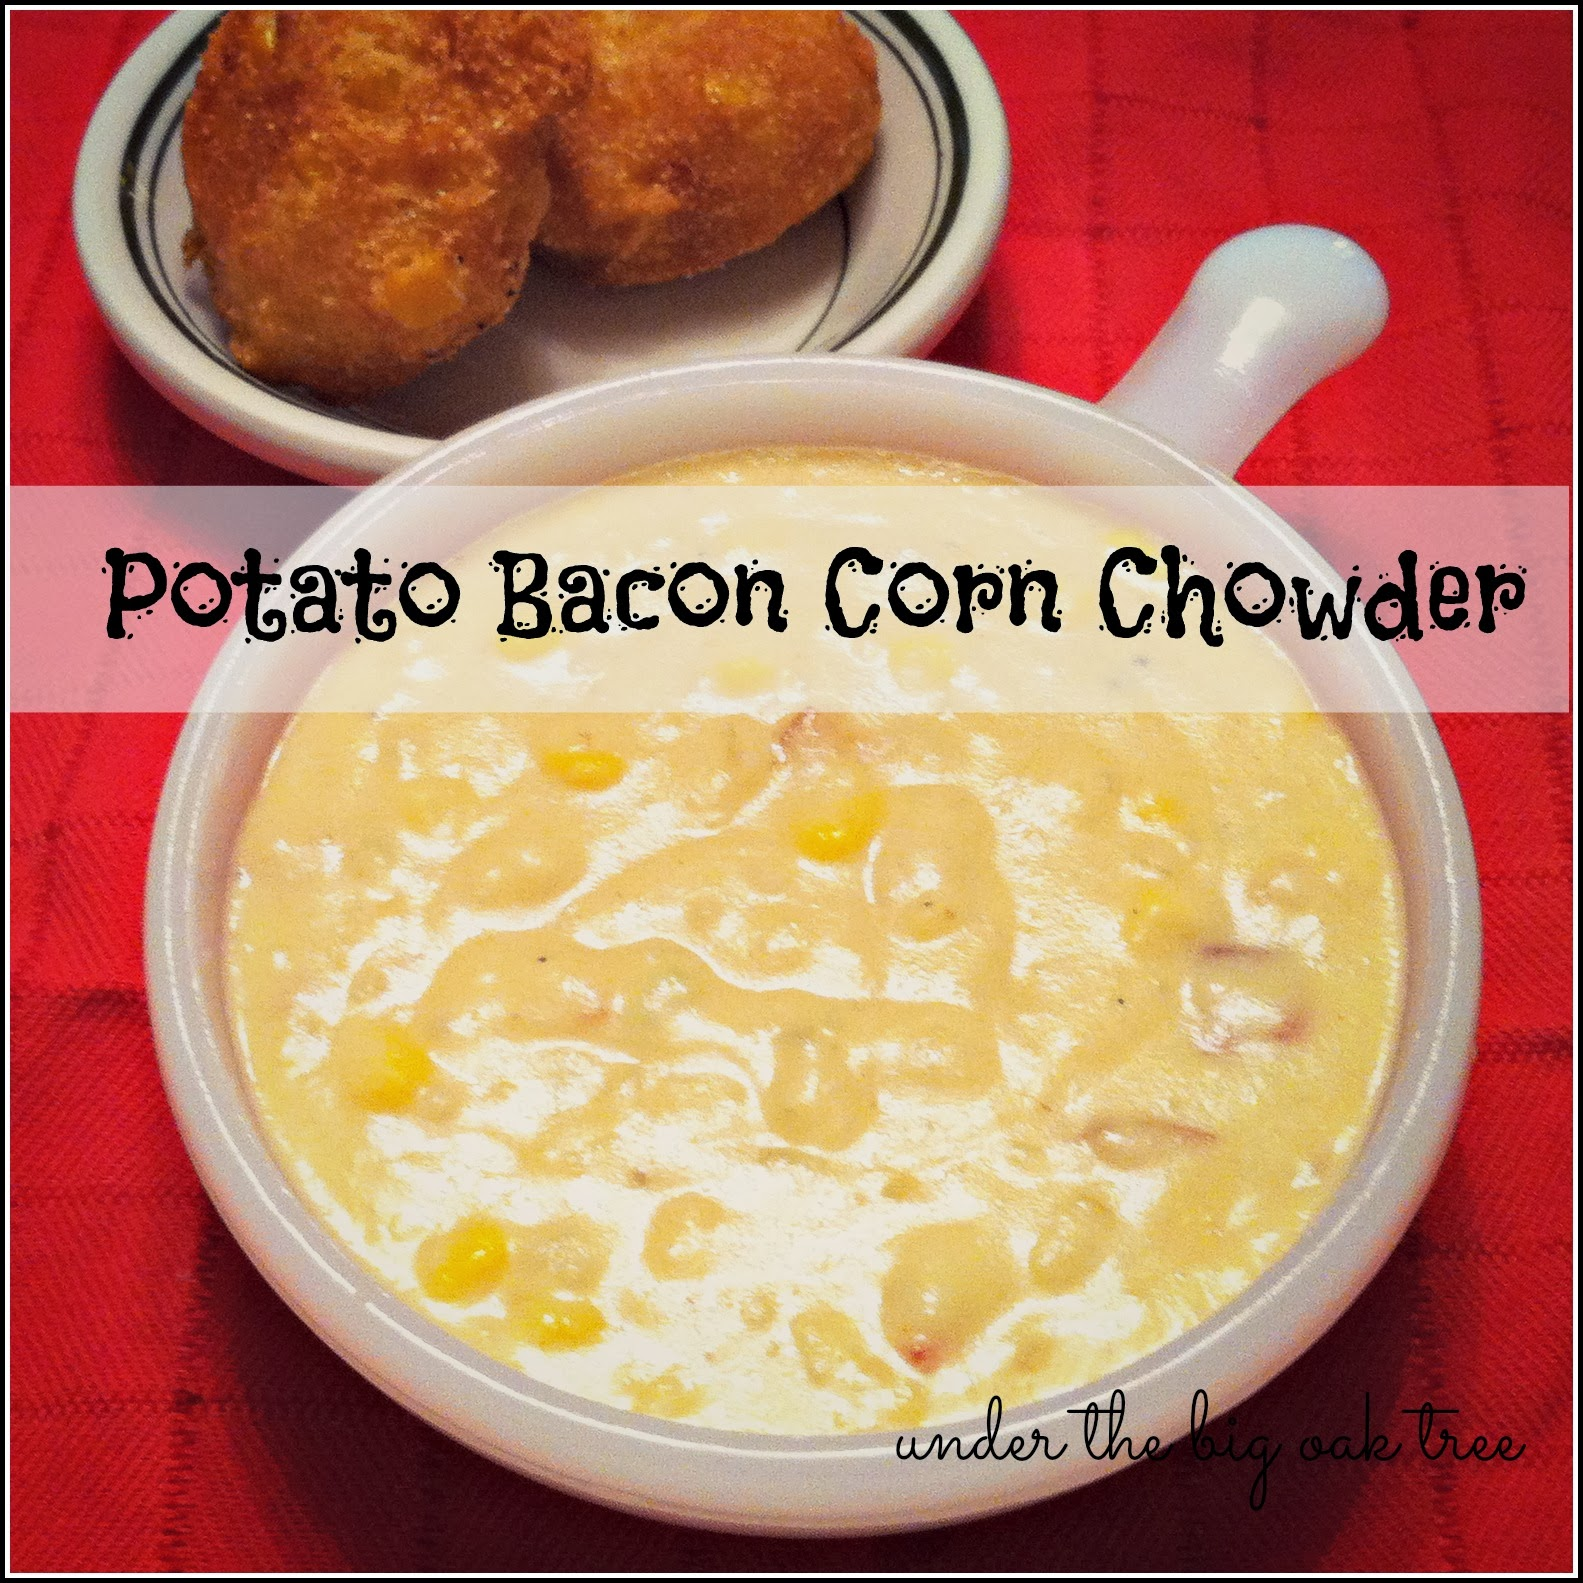 Under the Big Oak Tree: Potato Bacon Corn Chowder